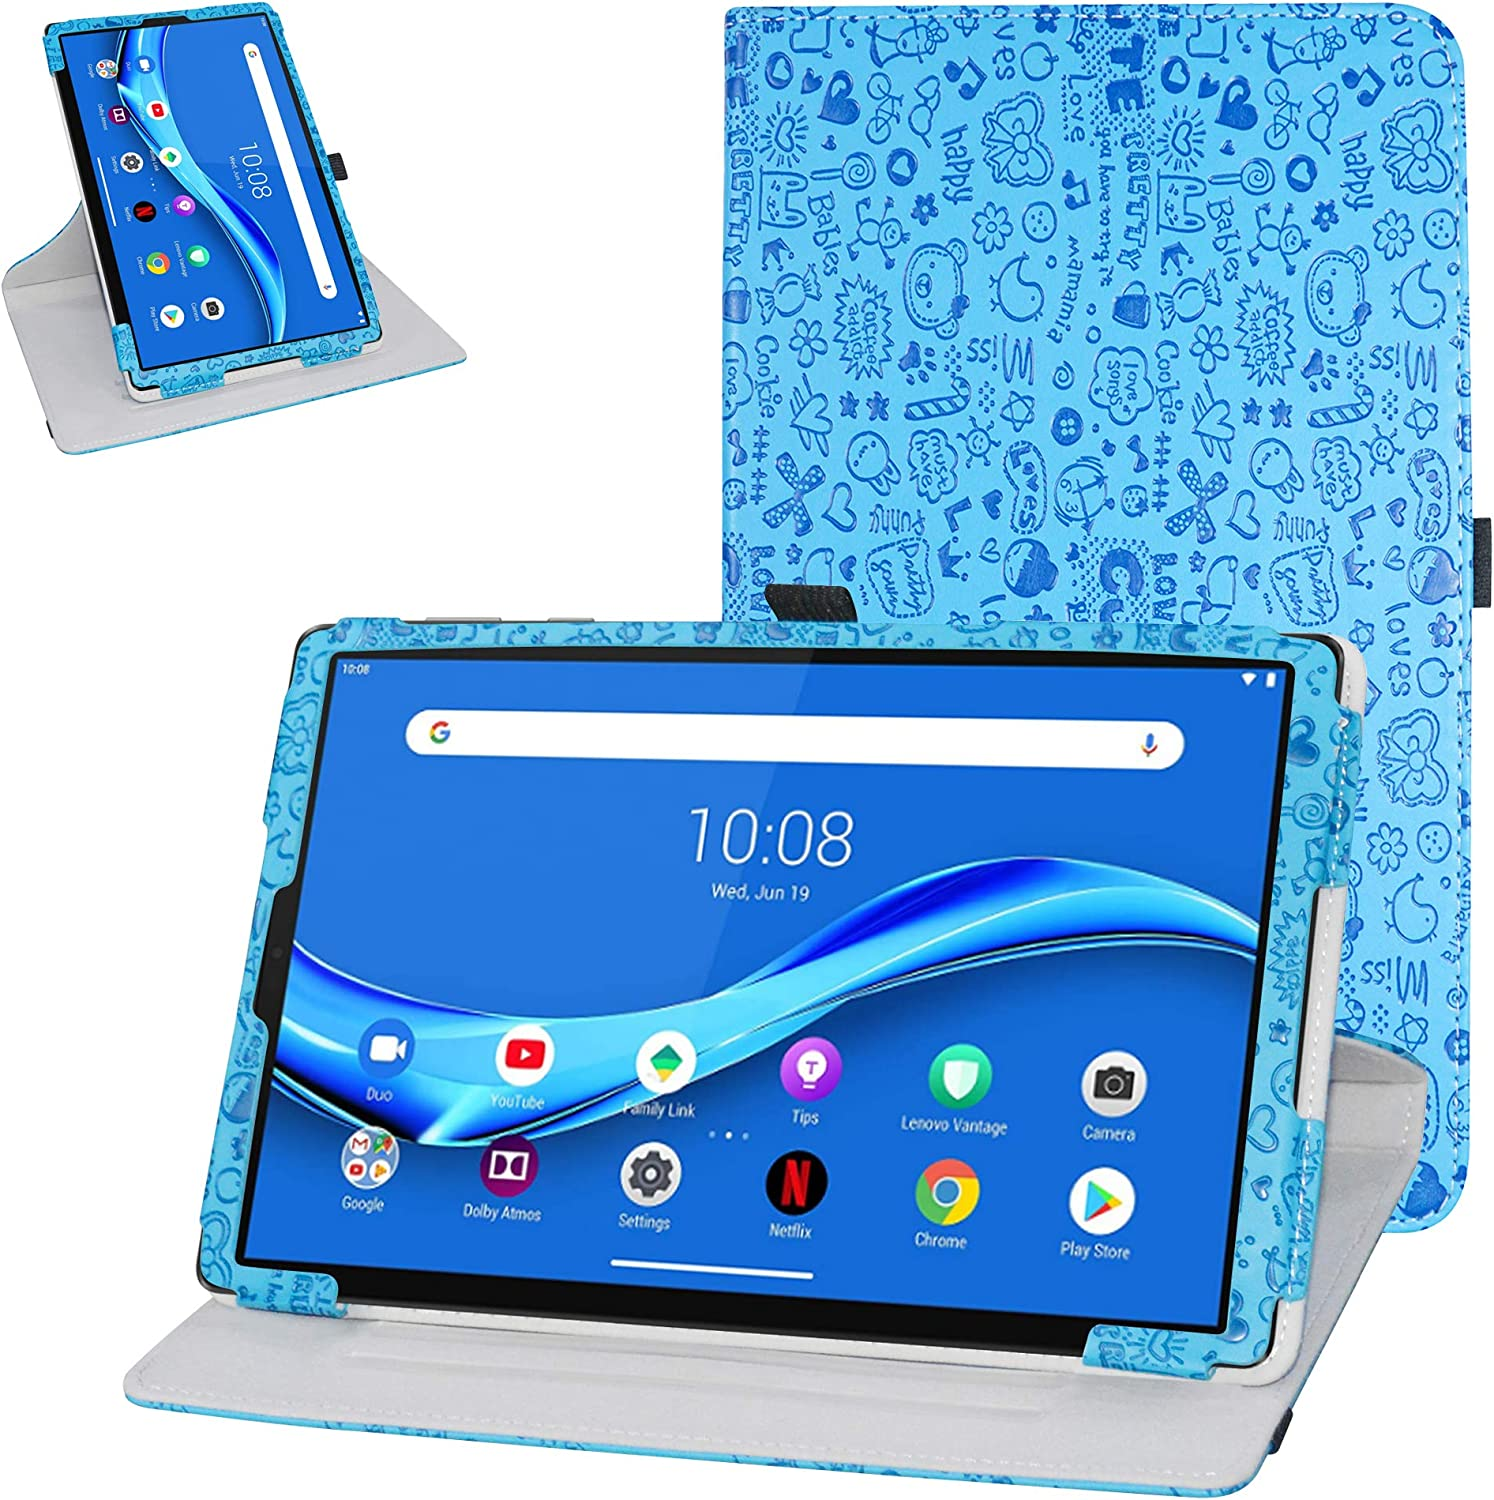 """Bige for Lenovo Tab M10 Plus Rotating Case,360 Degree Rotary Stand with Cute Pattern Cover for 10.3"""" Lenovo Tab M10 Plus/Smart Tab M10 Plus Tablet (Not fit 10.1"""" Lenovo Smart Tab M10),Blue"""